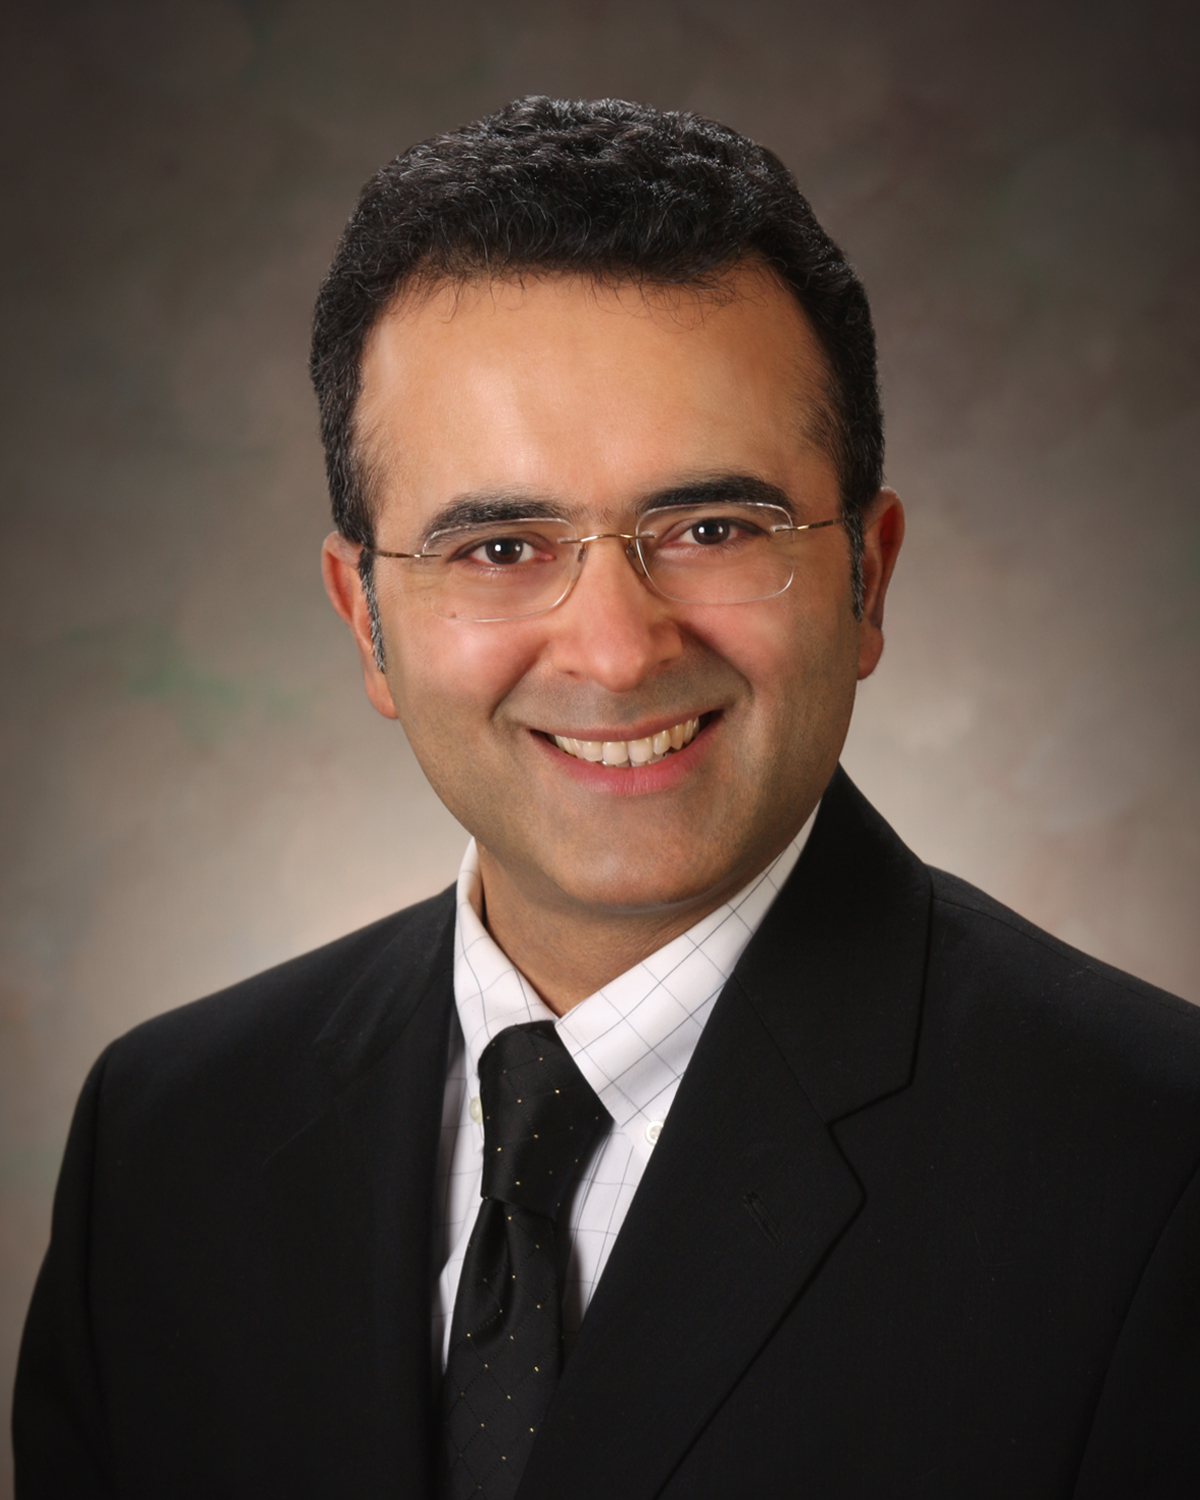 Alexander Efros, MBA, CPA's advisor photo